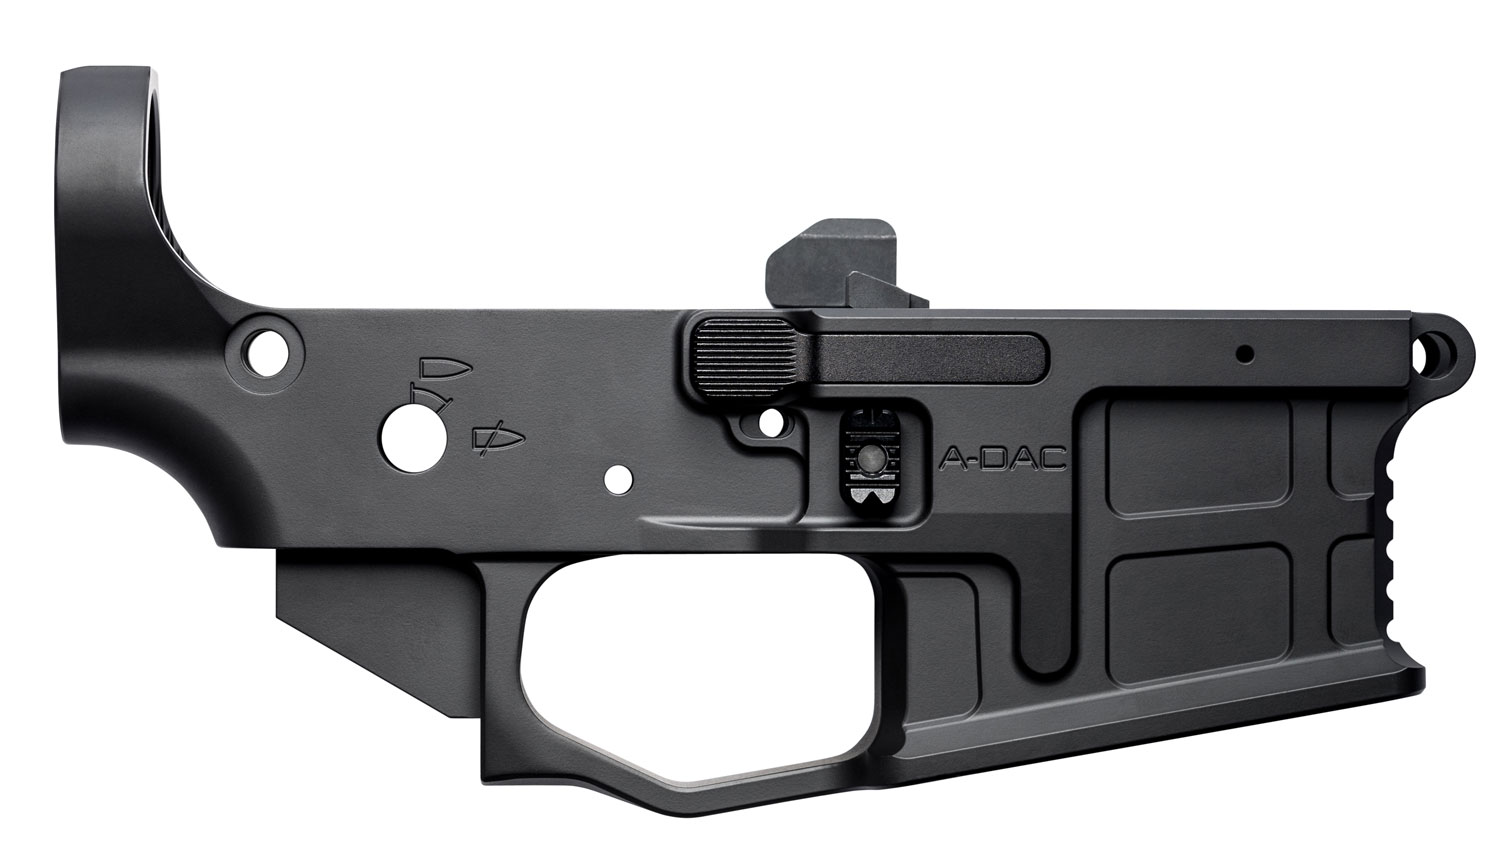 RADIAN WEAPONS R0166 AX556  AR-15 Lower Receiver Radian Black